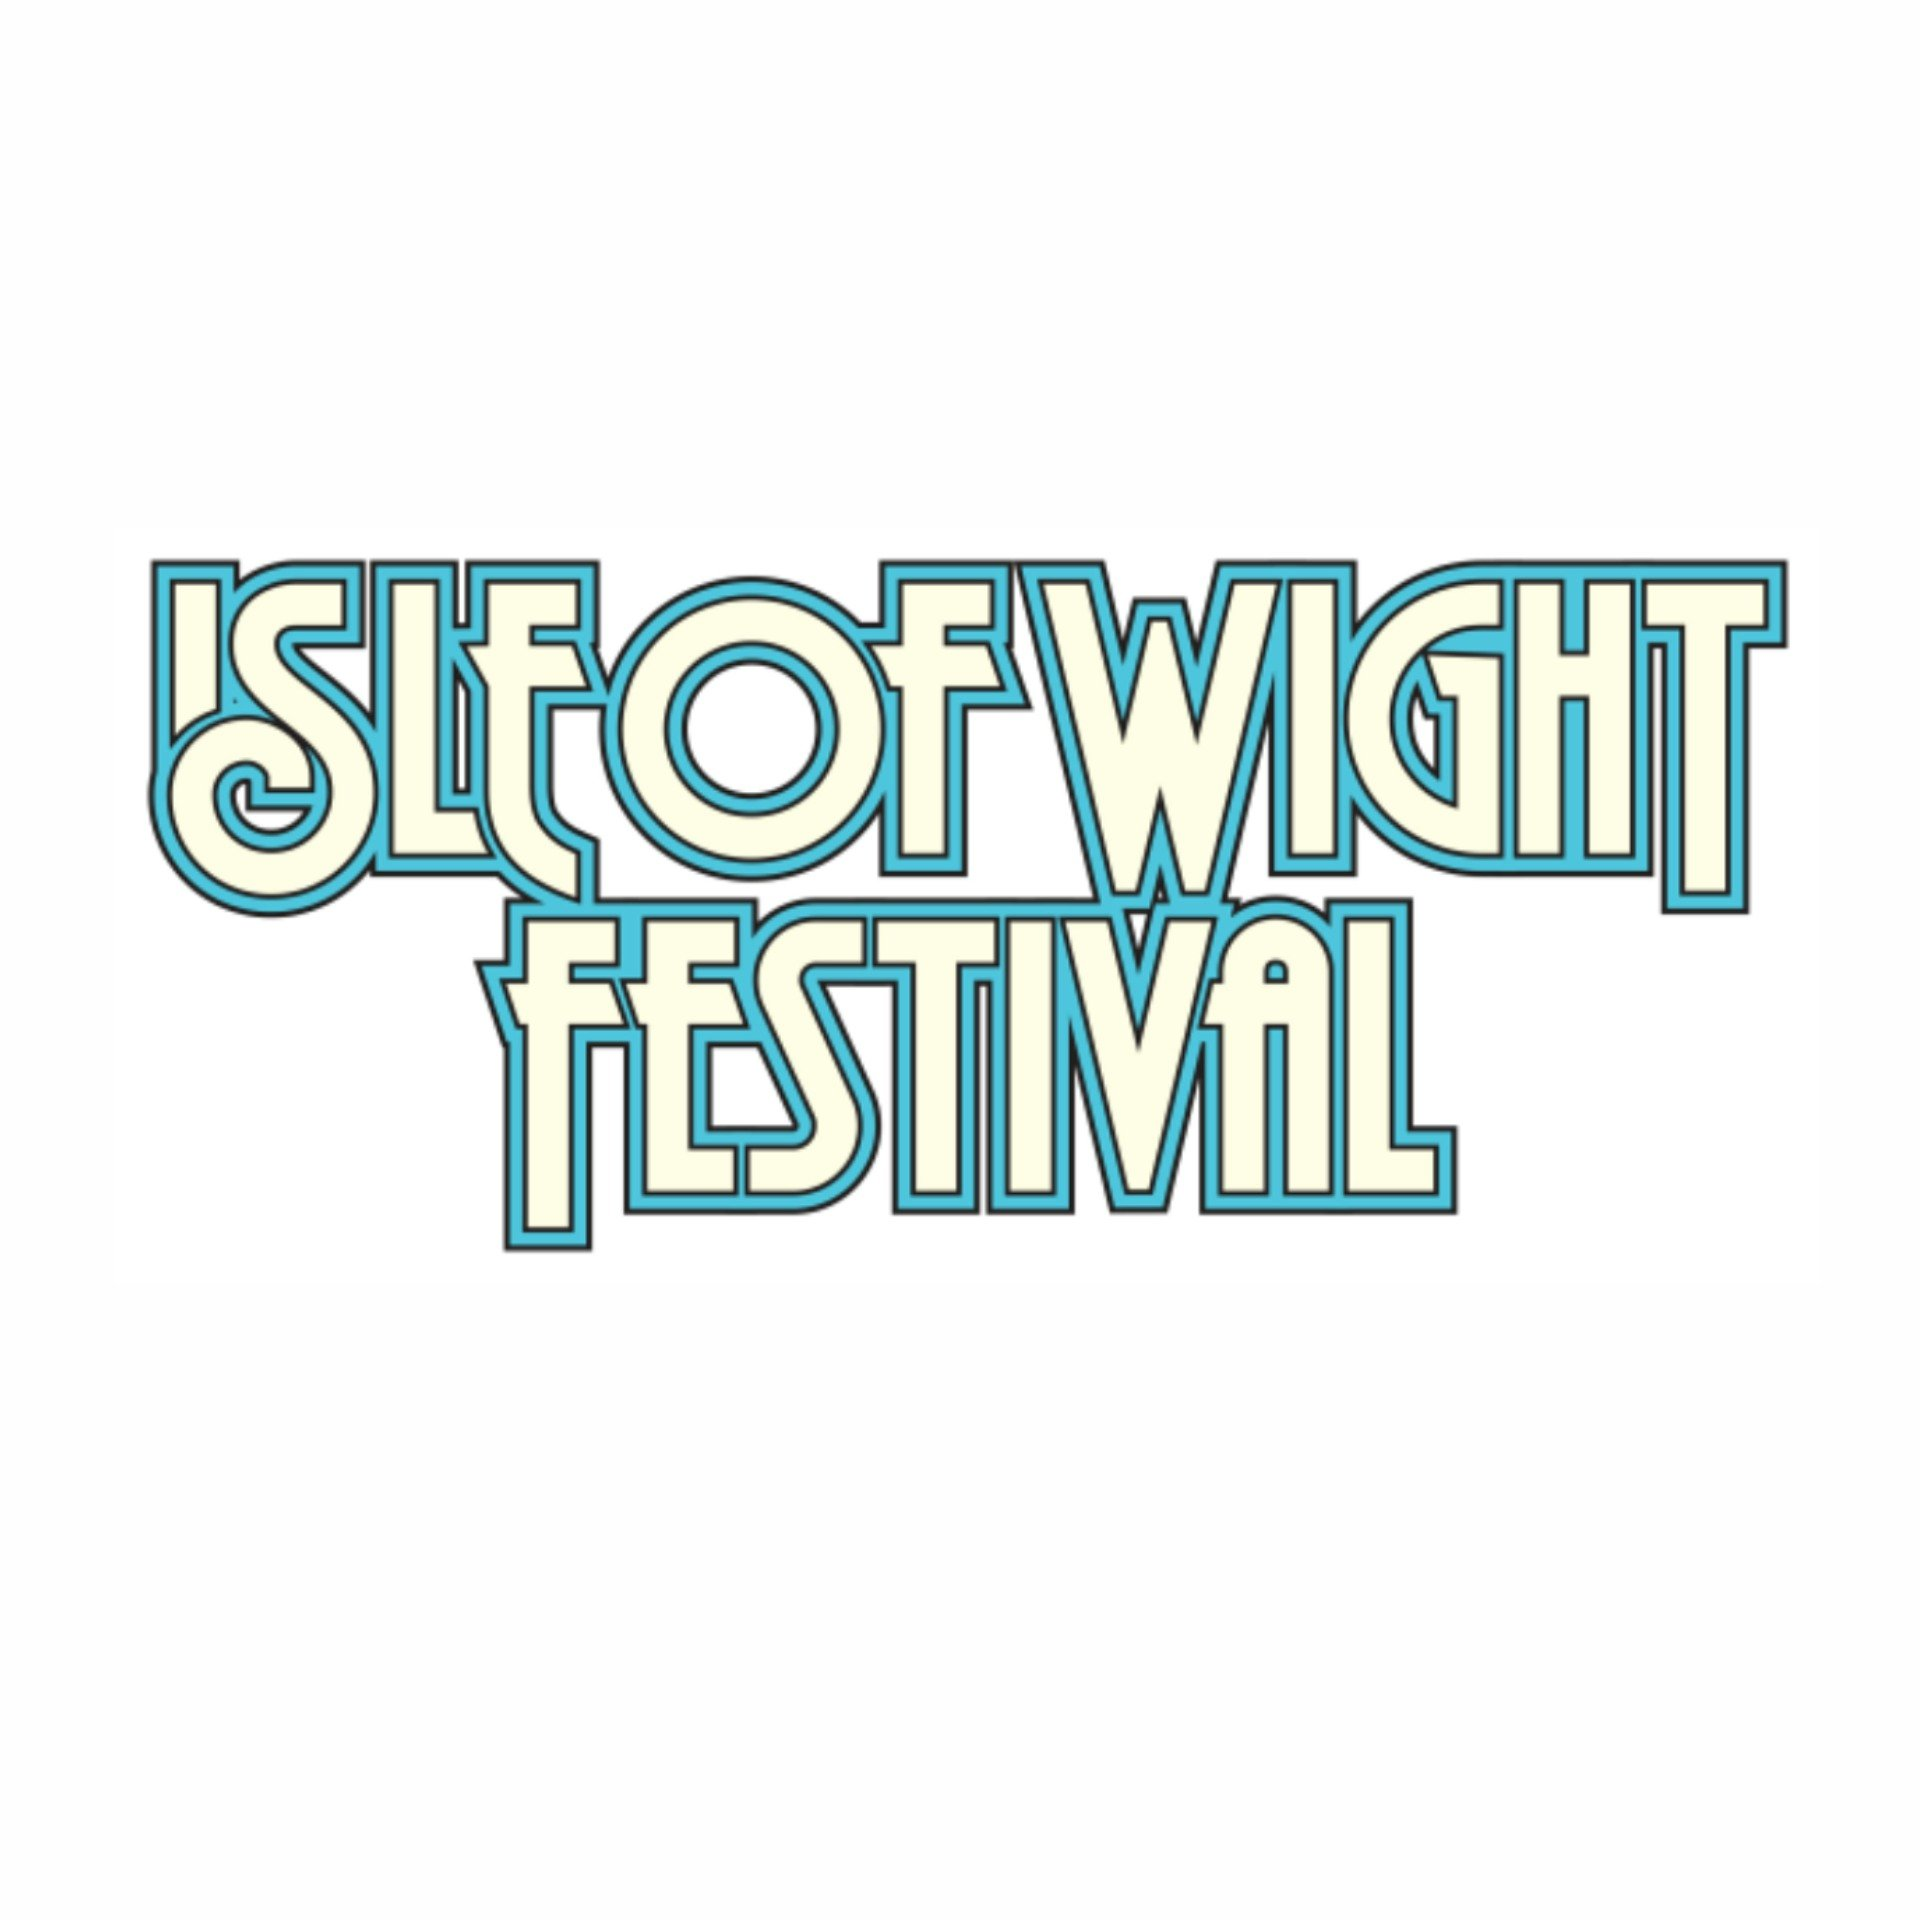 Isle of Wight Festival is a customer of NDL Event Power Solutions